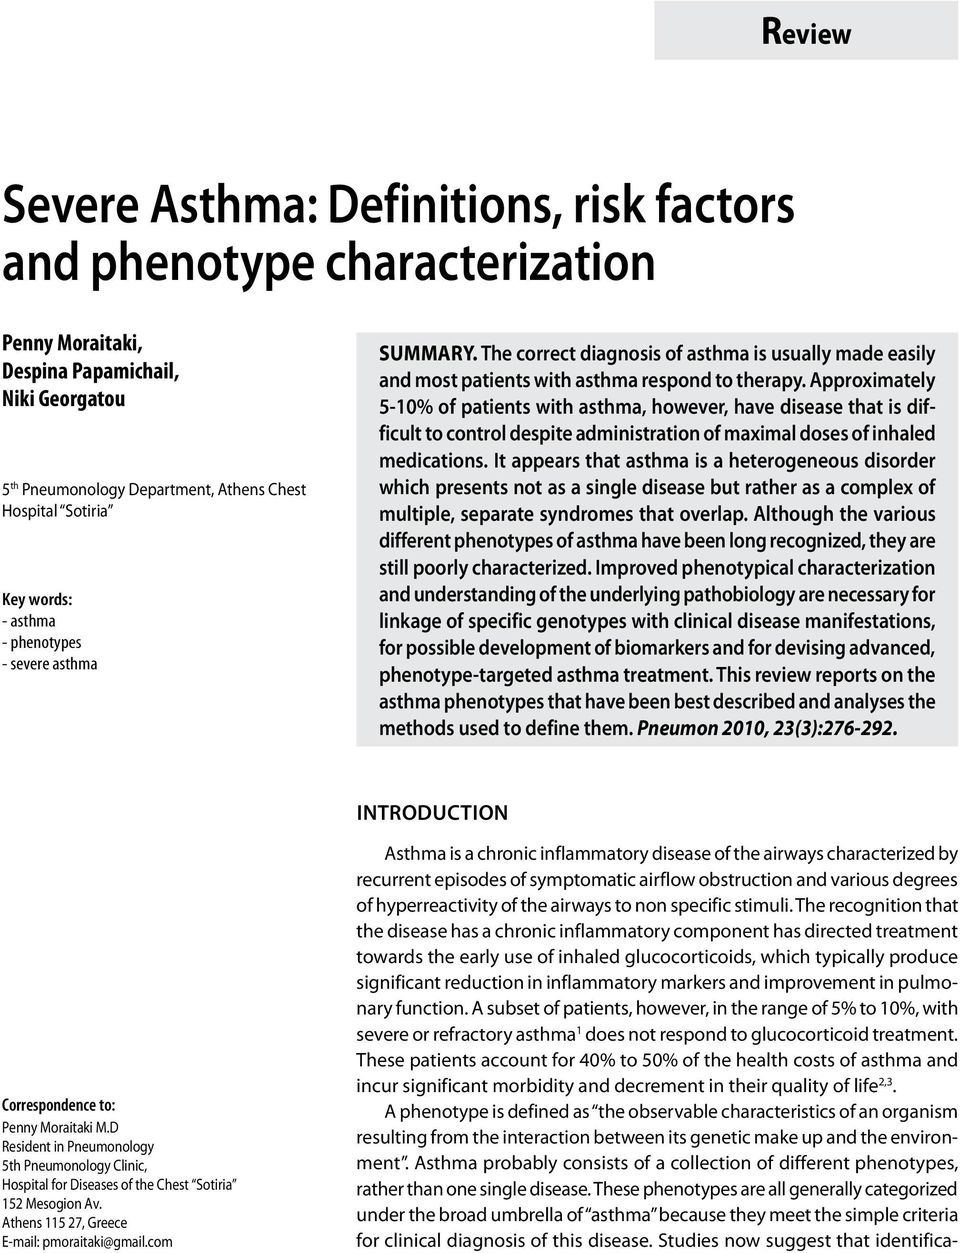 Approximately 5-10% of patients with asthma, however, have disease that is difficult to control despite administration of maximal doses of inhaled medications.